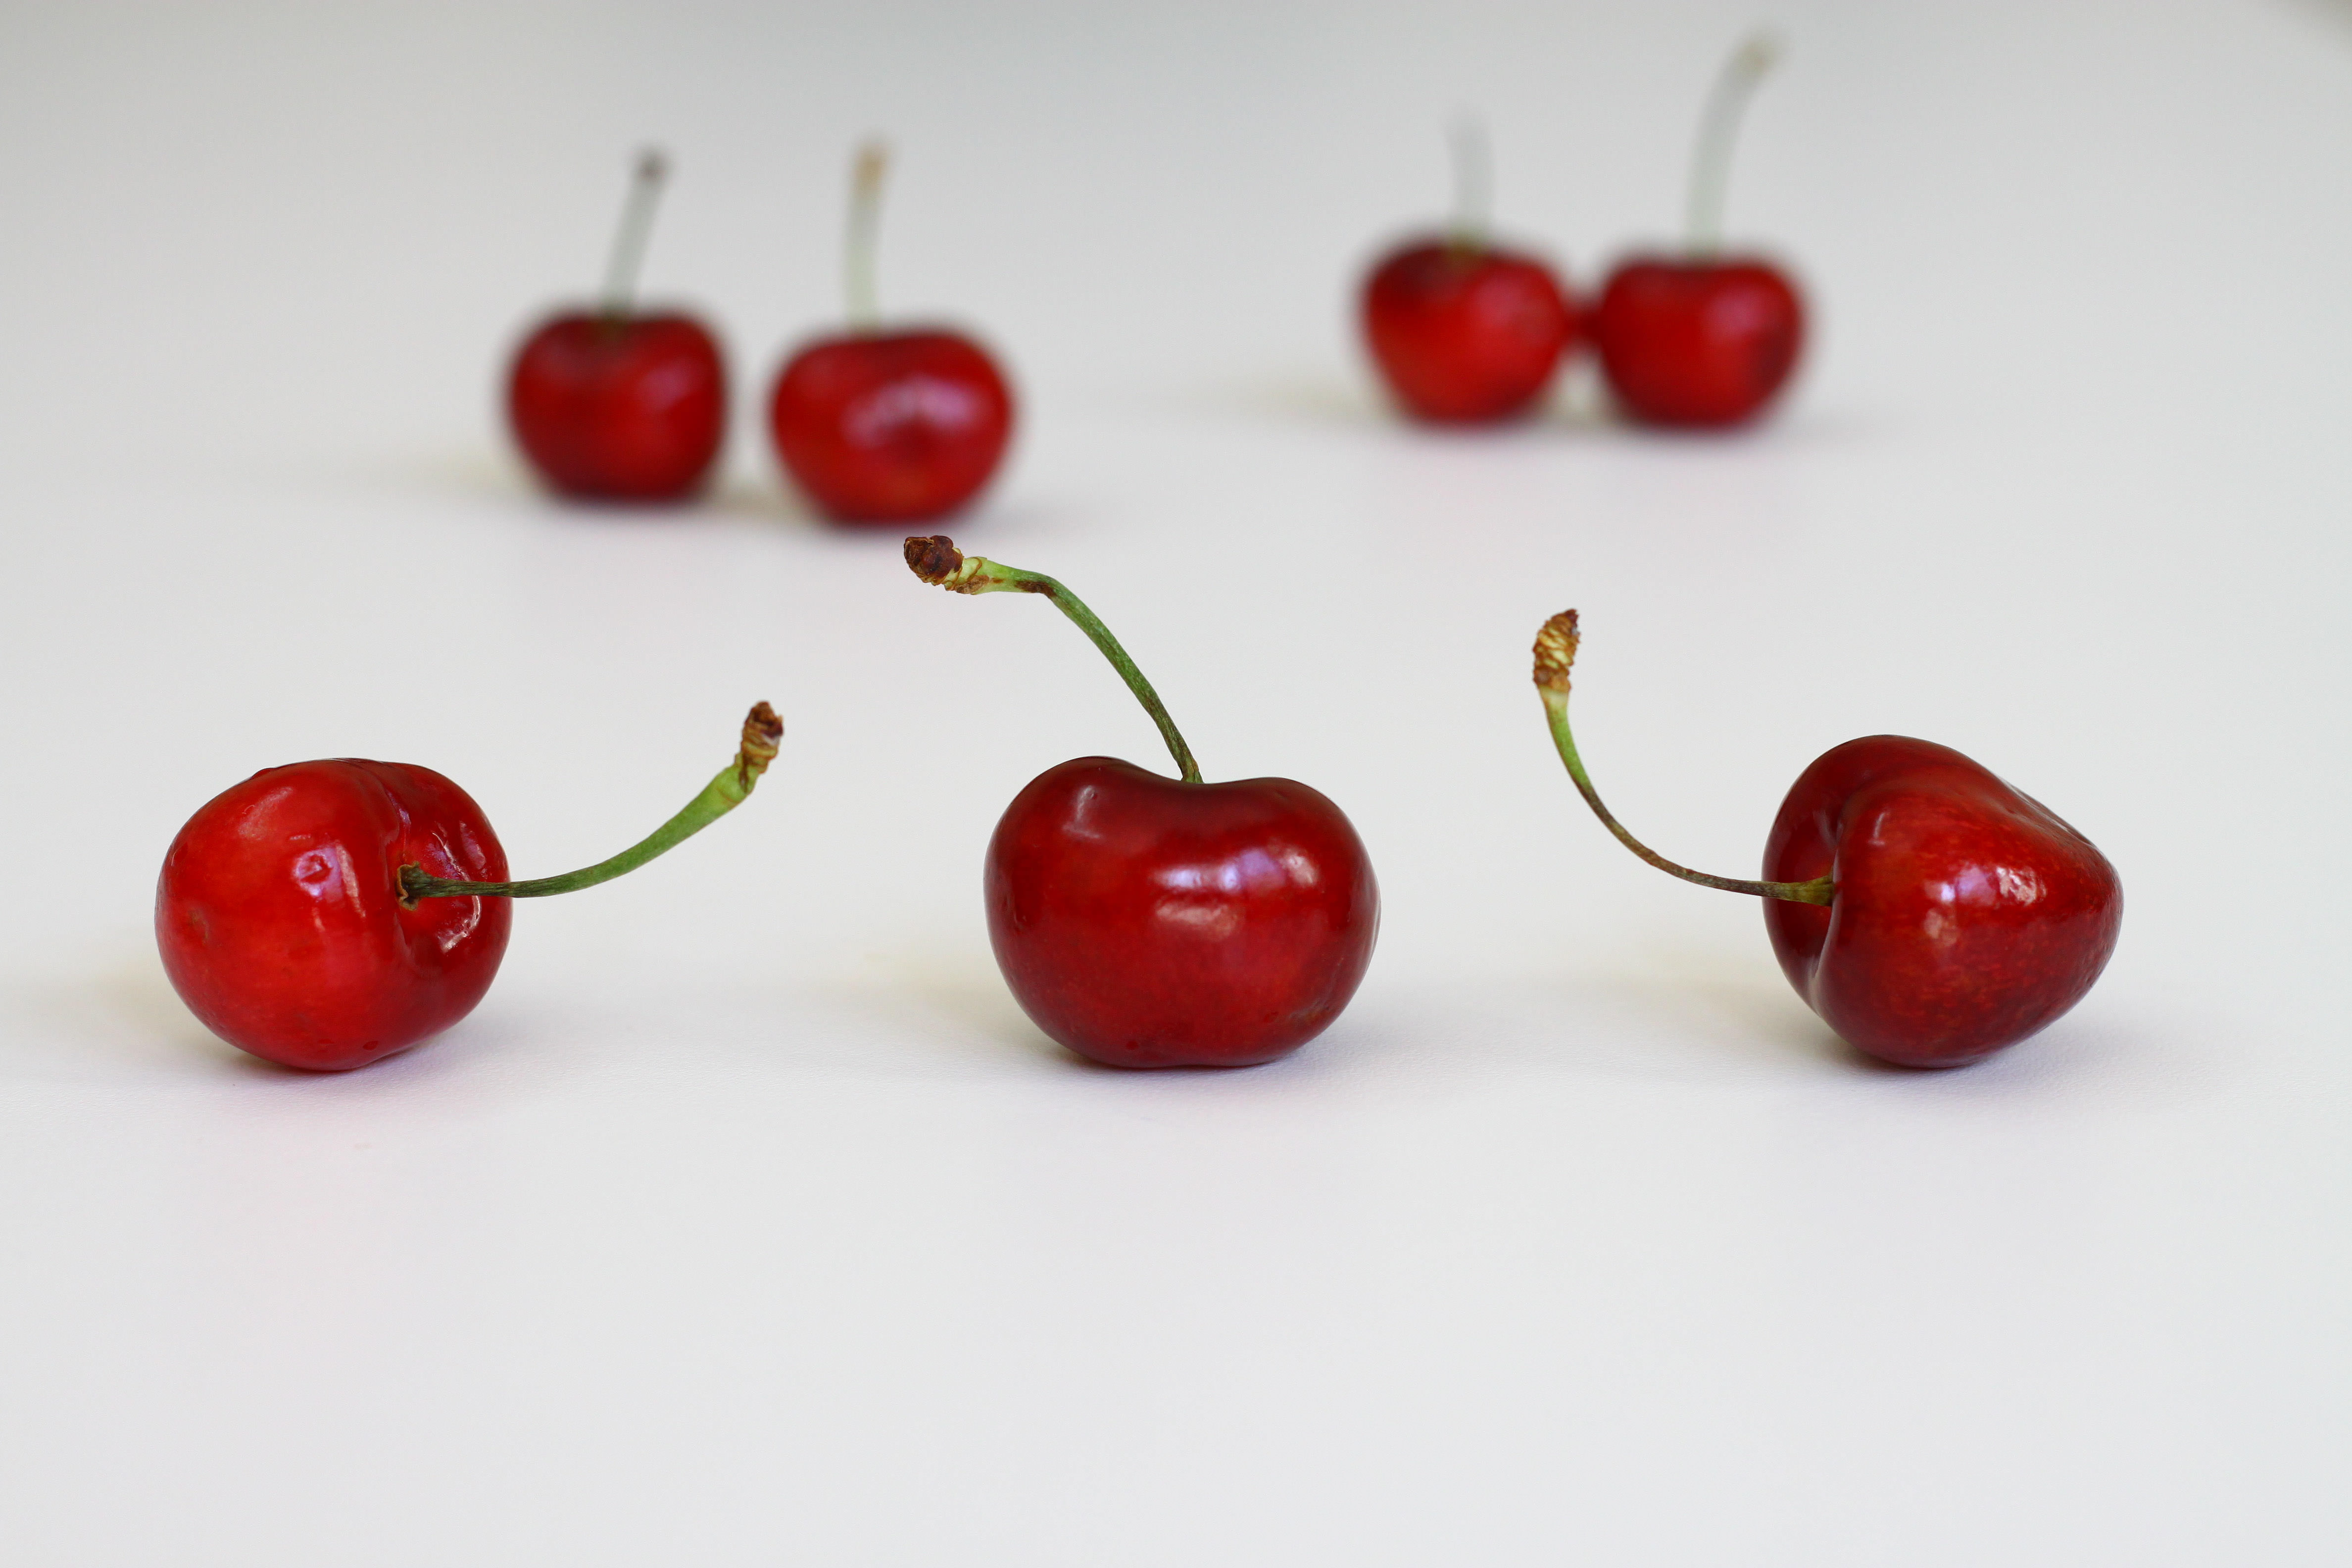 High Quality Stock Fruits